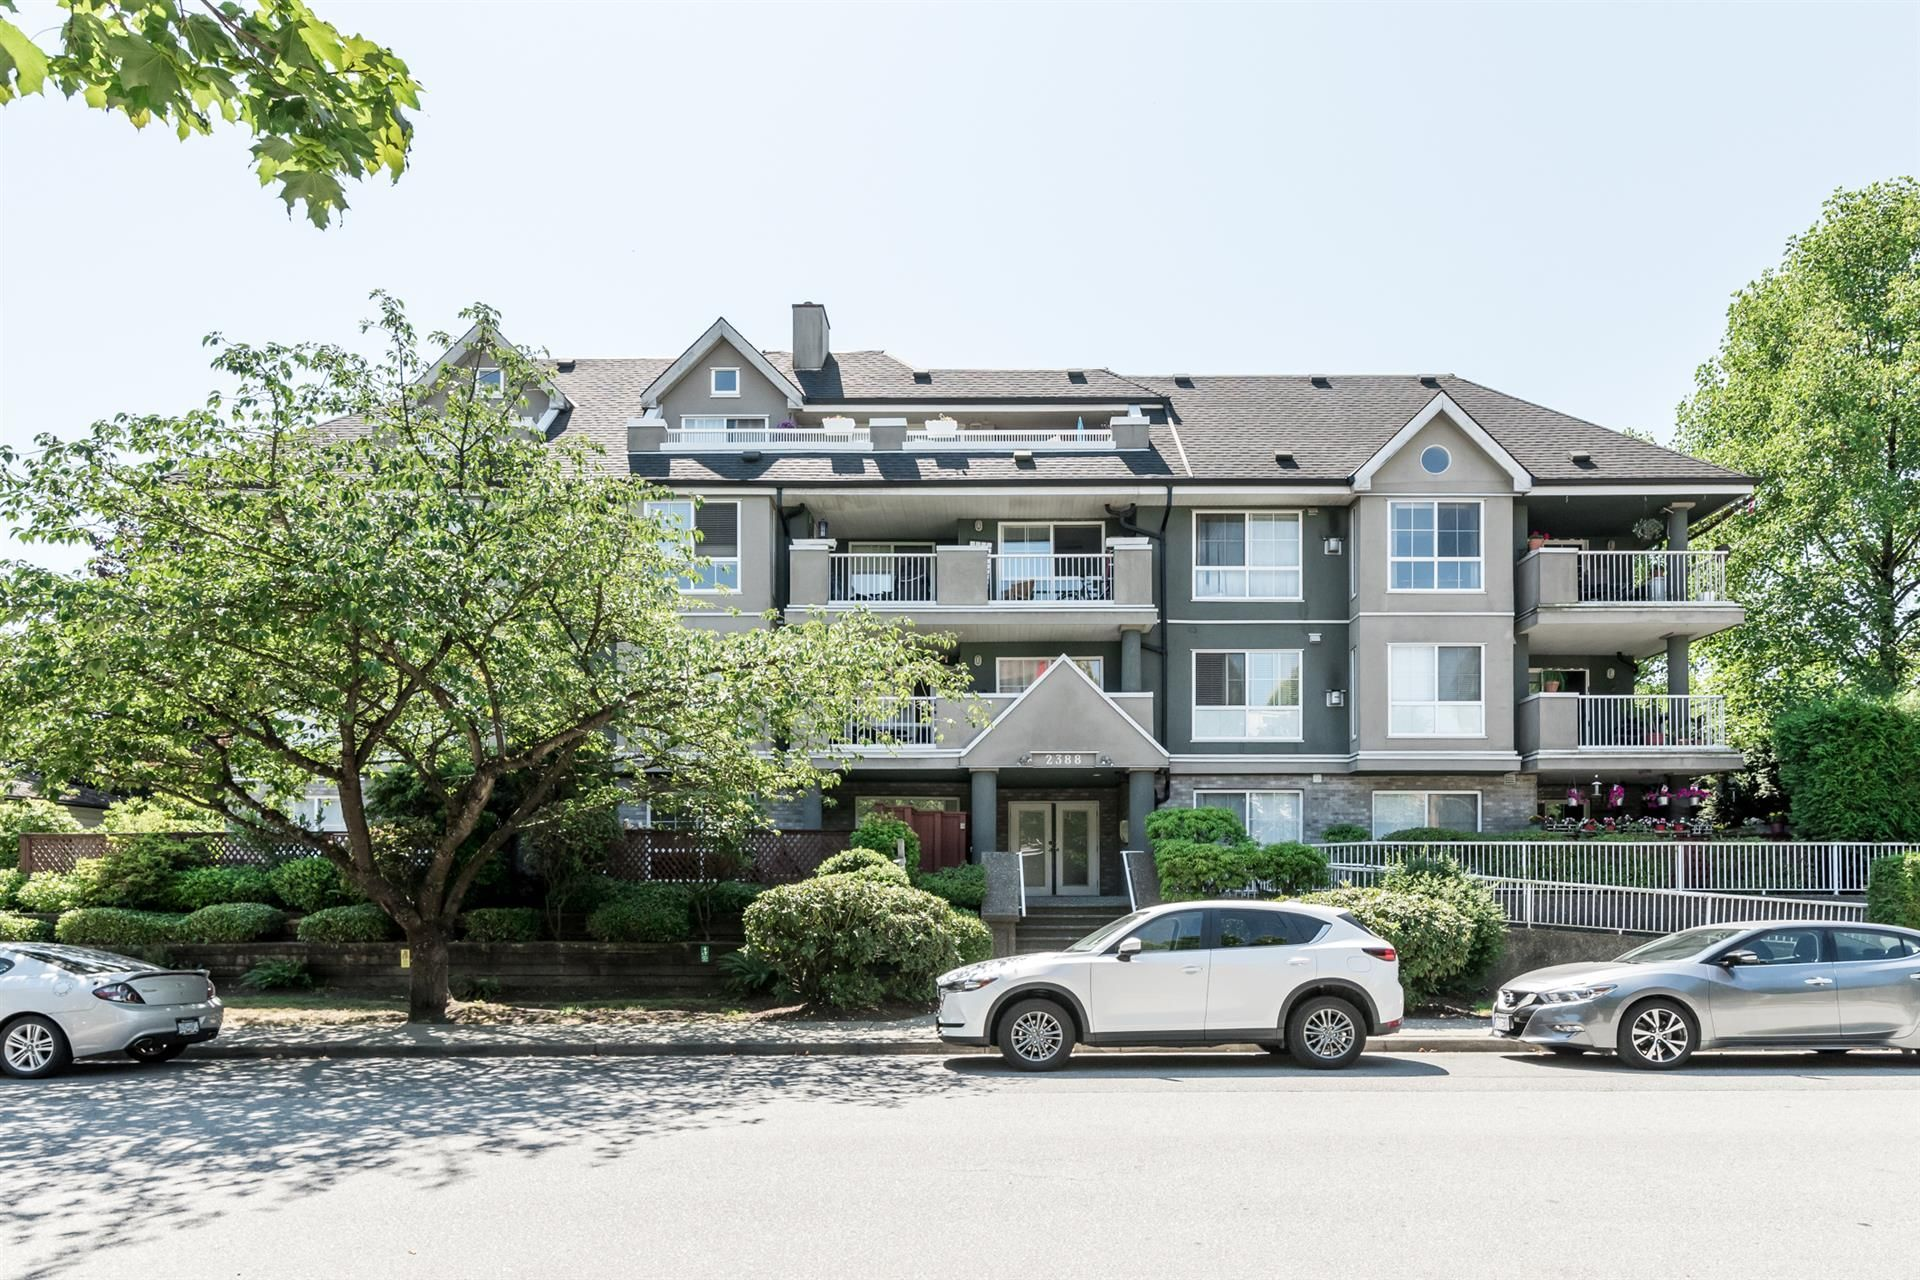 """Main Photo: 306 2388 WELCHER Avenue in Port Coquitlam: Central Pt Coquitlam Condo for sale in """"PARK GREEN"""" : MLS®# R2292110"""